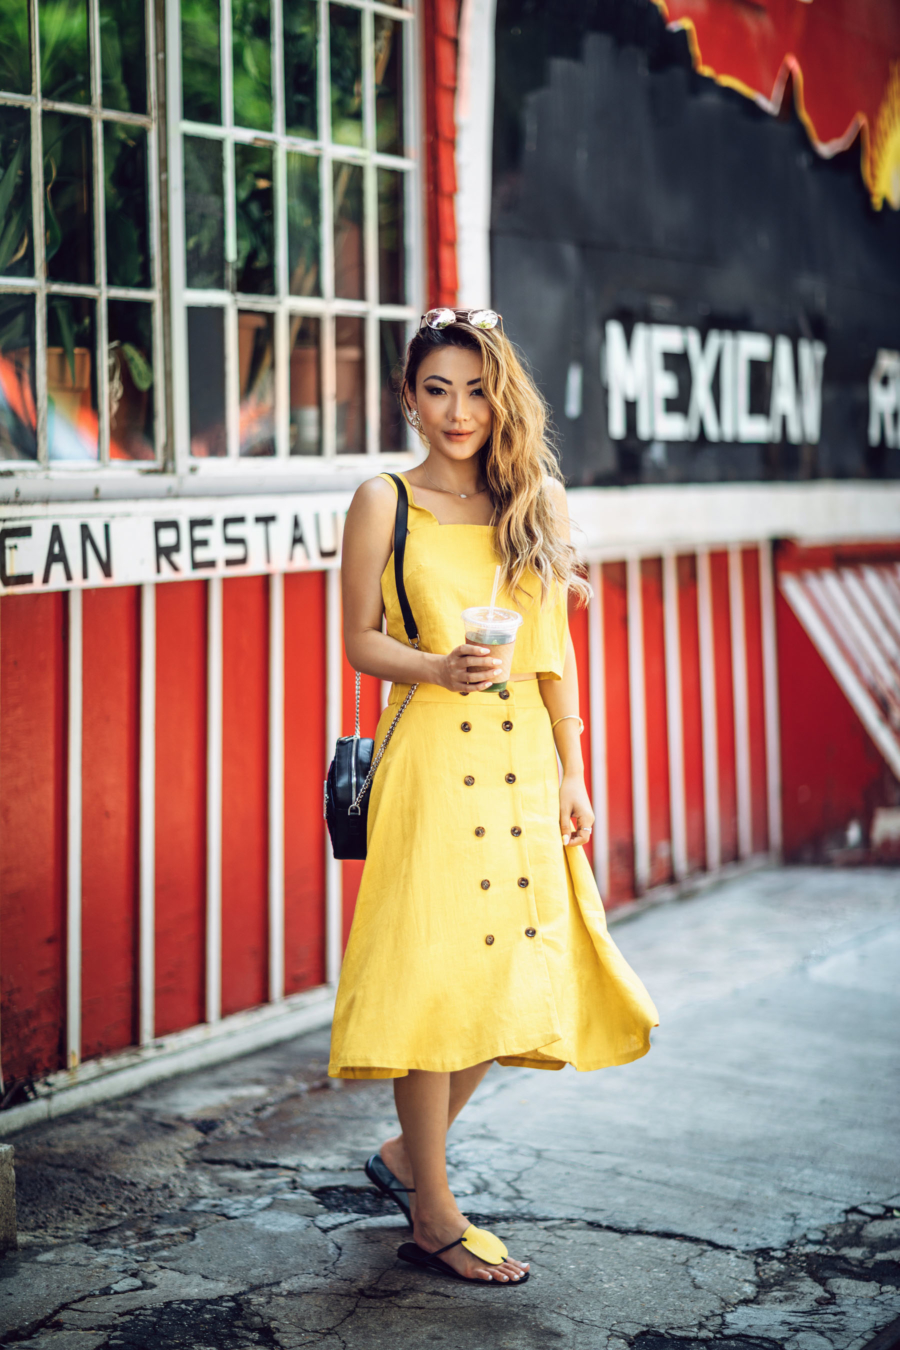 5 Best Colors to Wear This Summer & Stand Out - Yellow button down dress // Notjessfashion.com